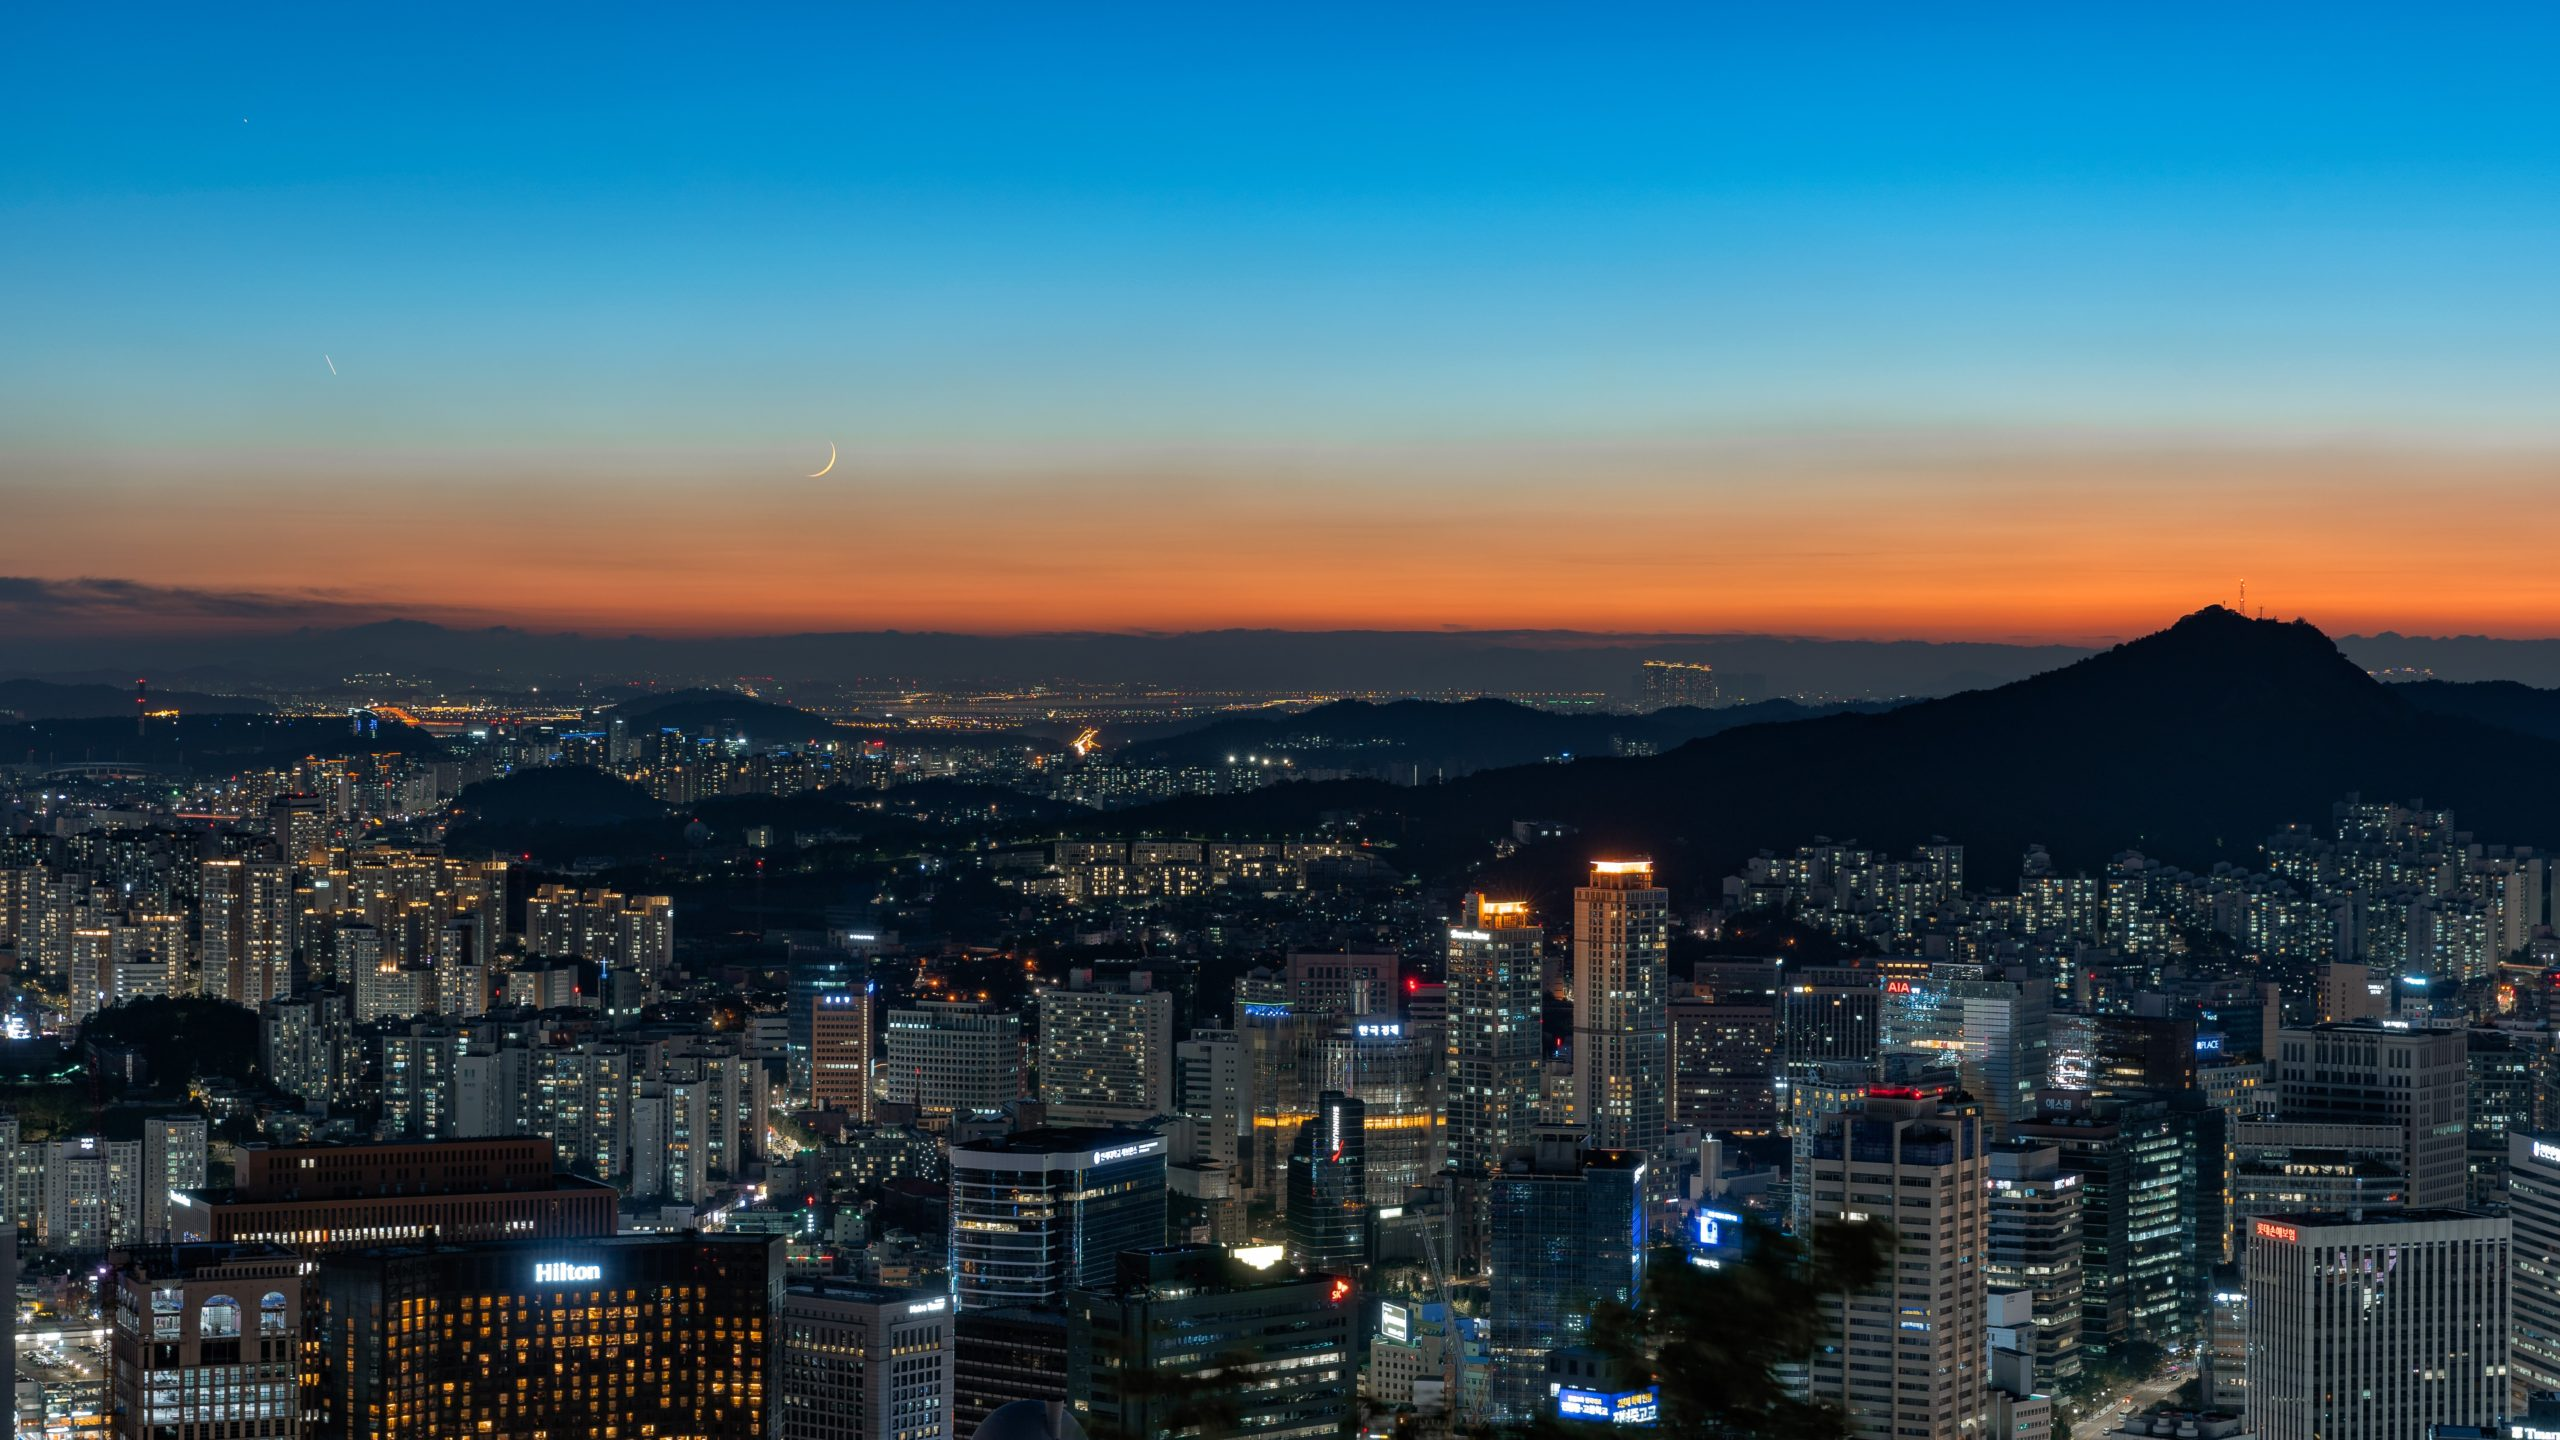 Seoul, South Korea - Namsan Hill - Photo by Ping Onganankun on Unsplash